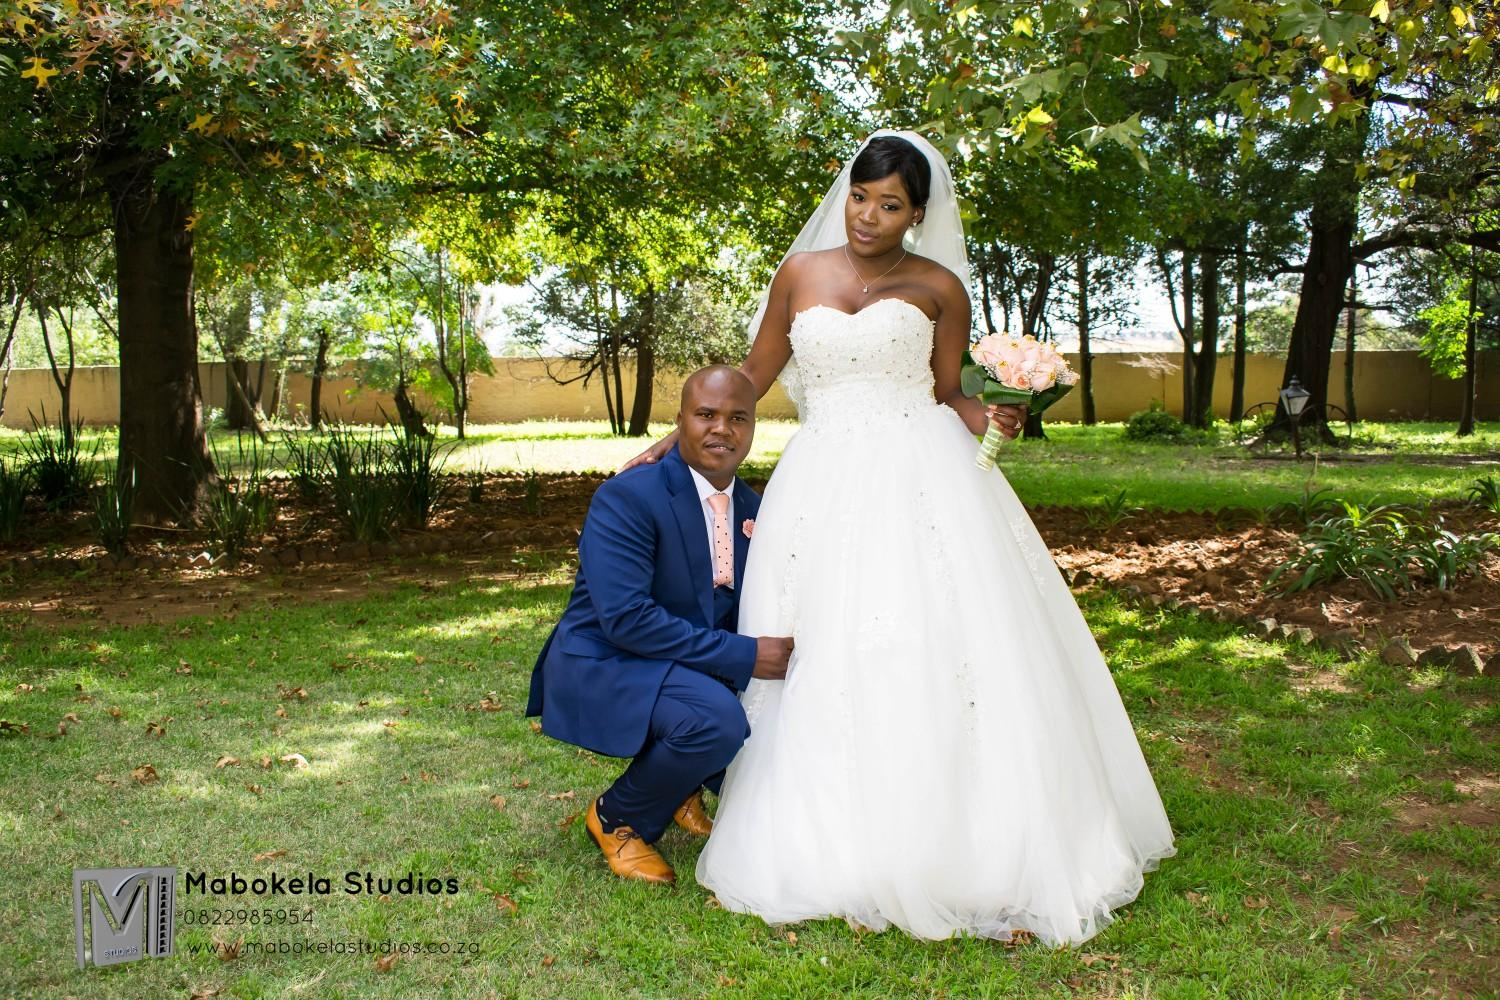 Mahlatse Nkosi and Edwin Lesenyo's wedding